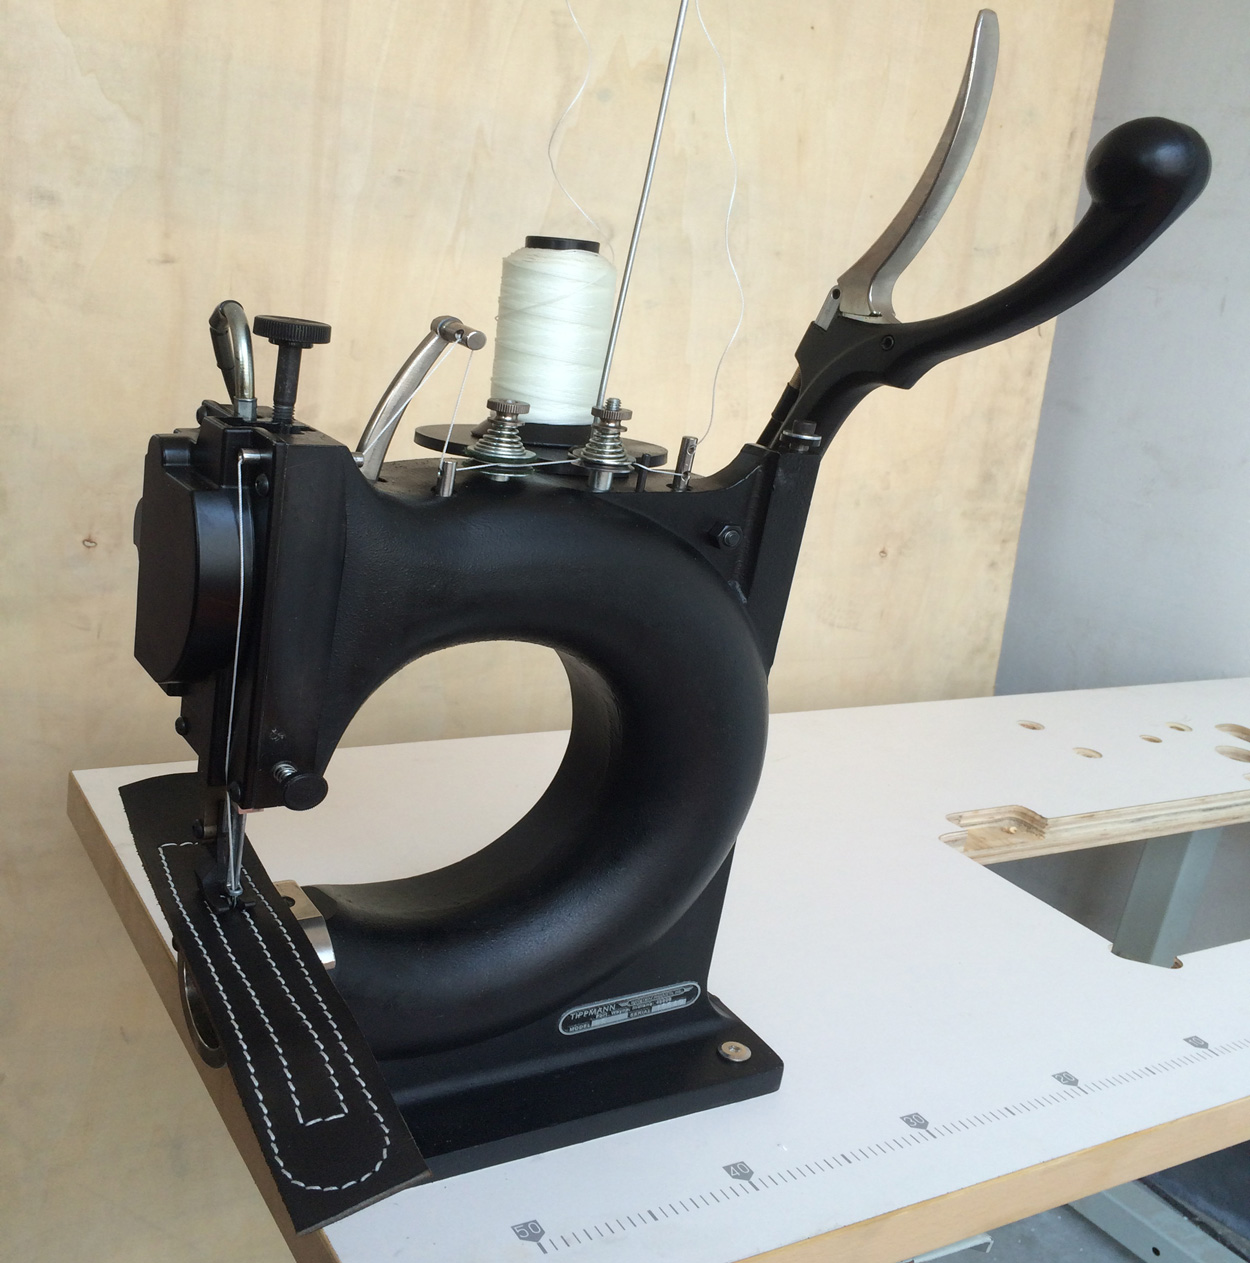 machine sewing leather